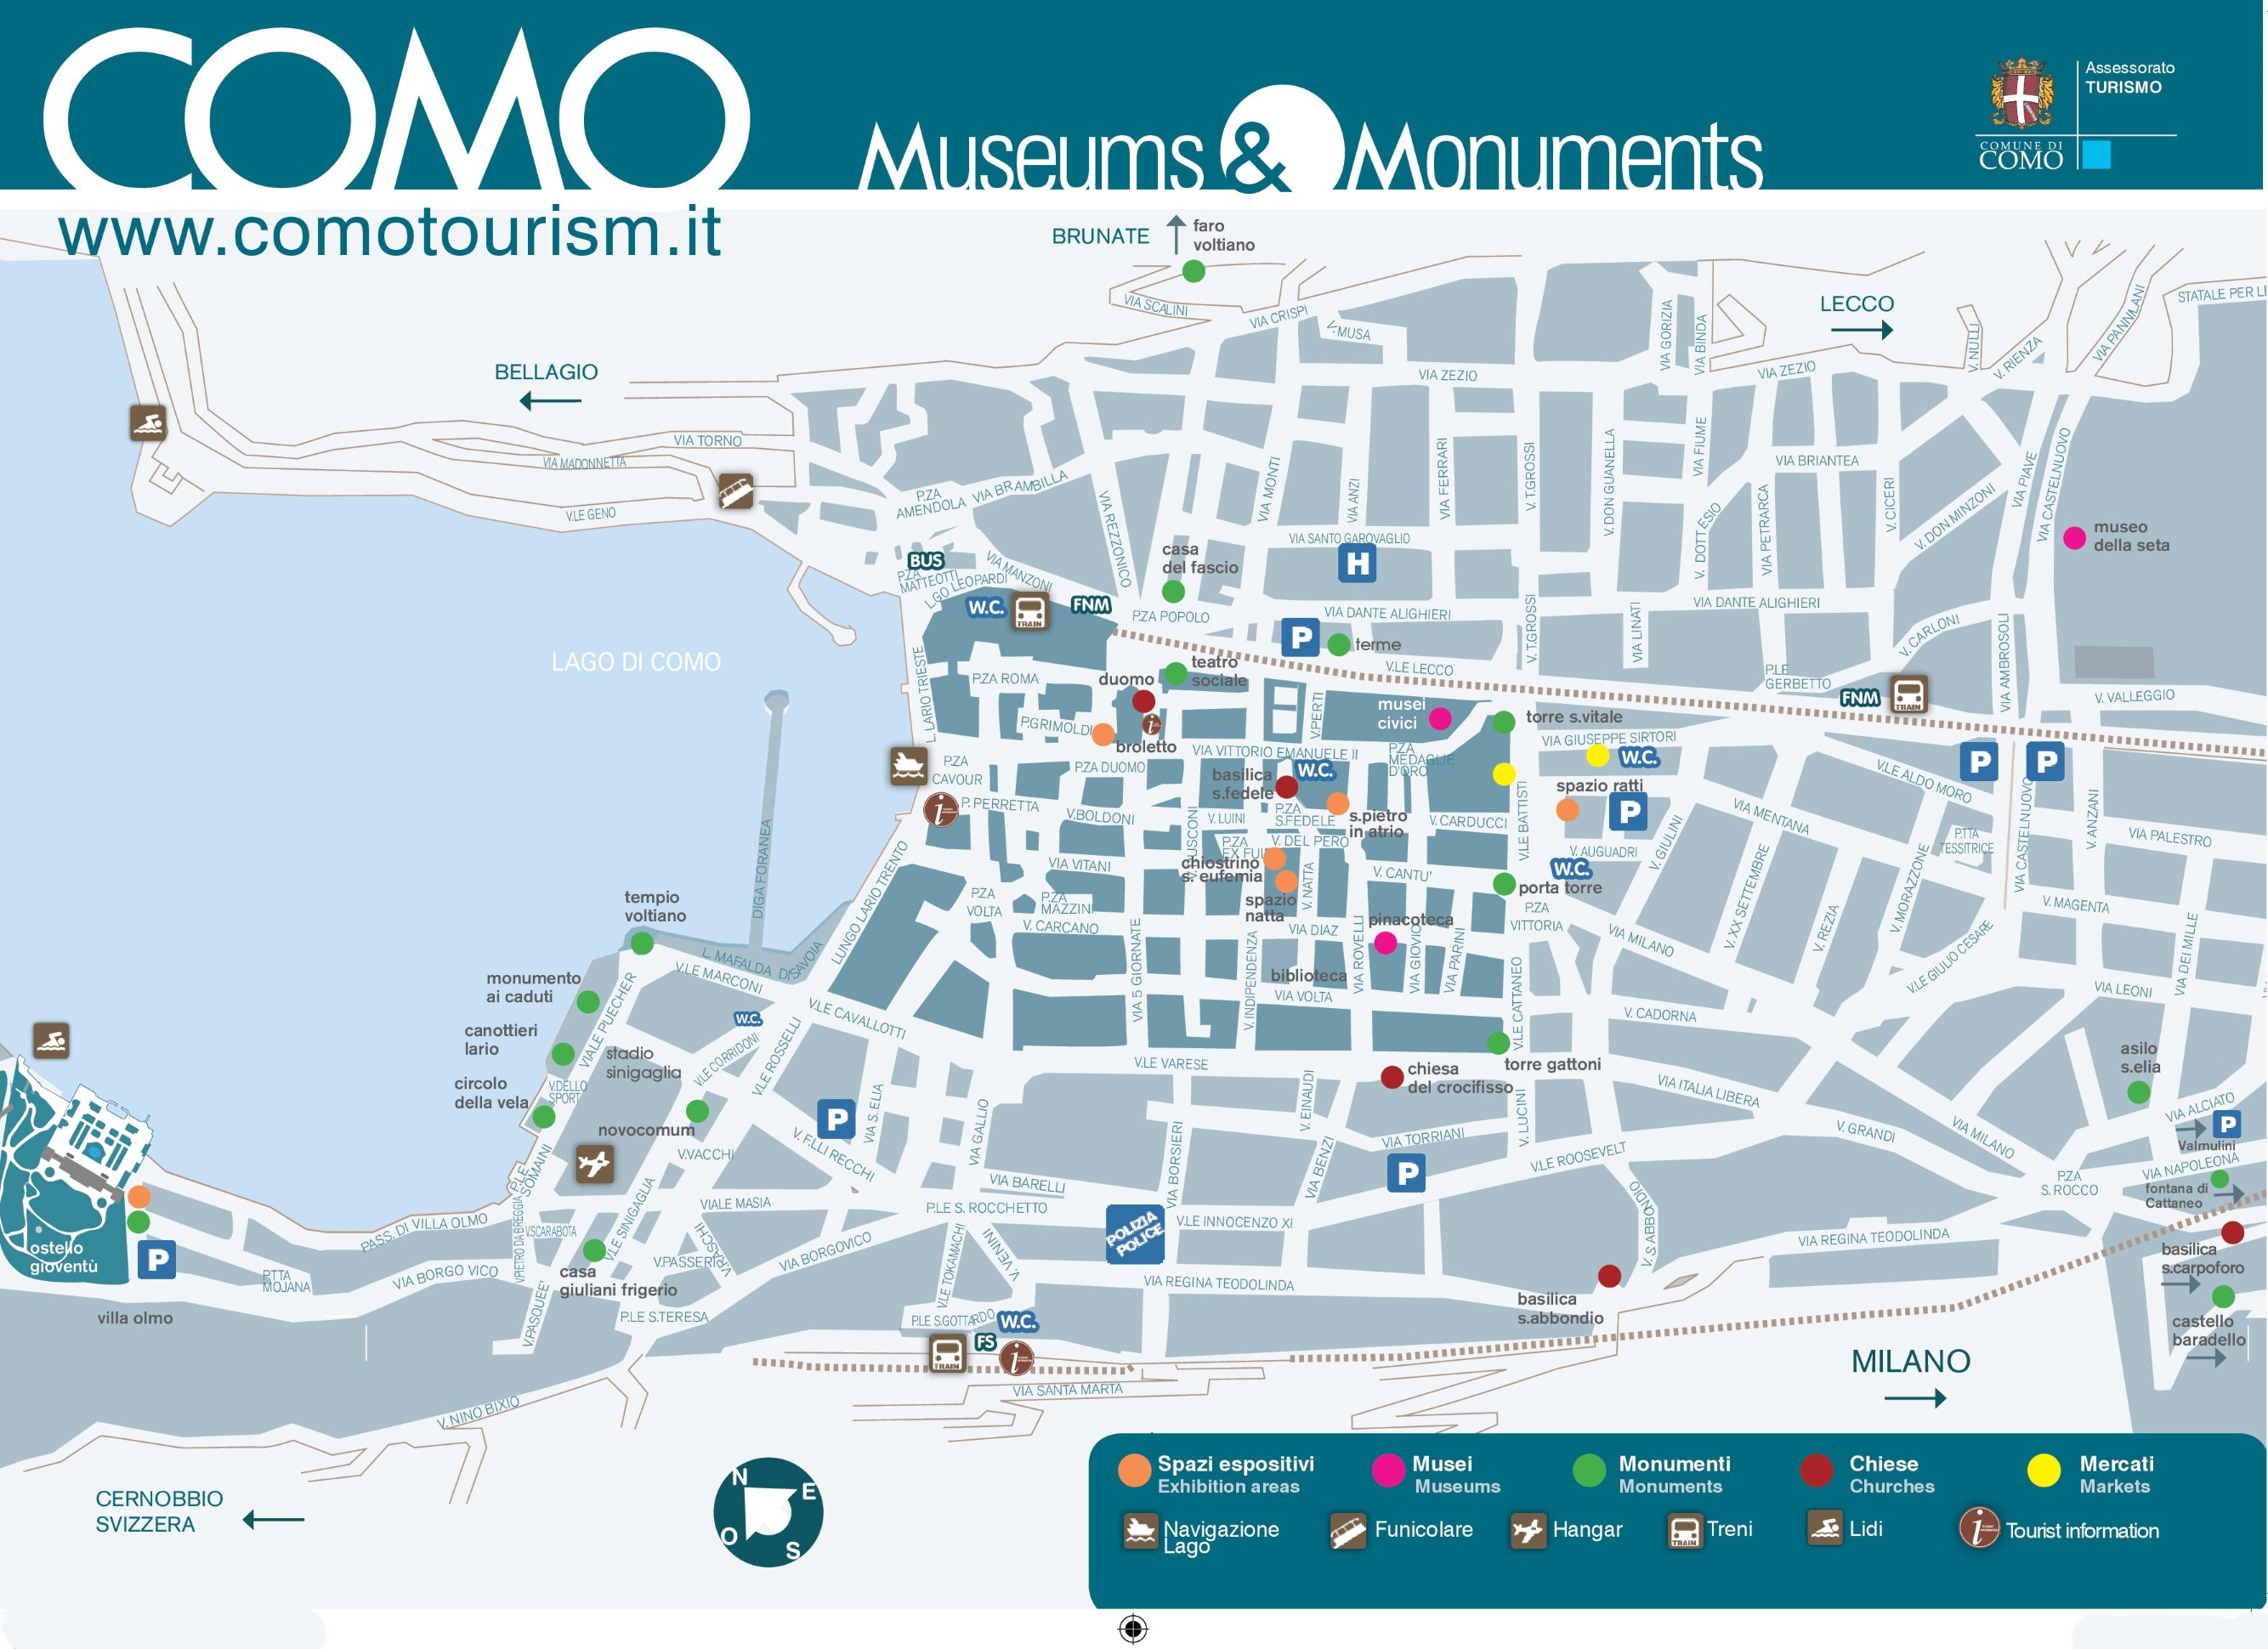 Como tourist attractions map – Brazil Tourist Attractions Map